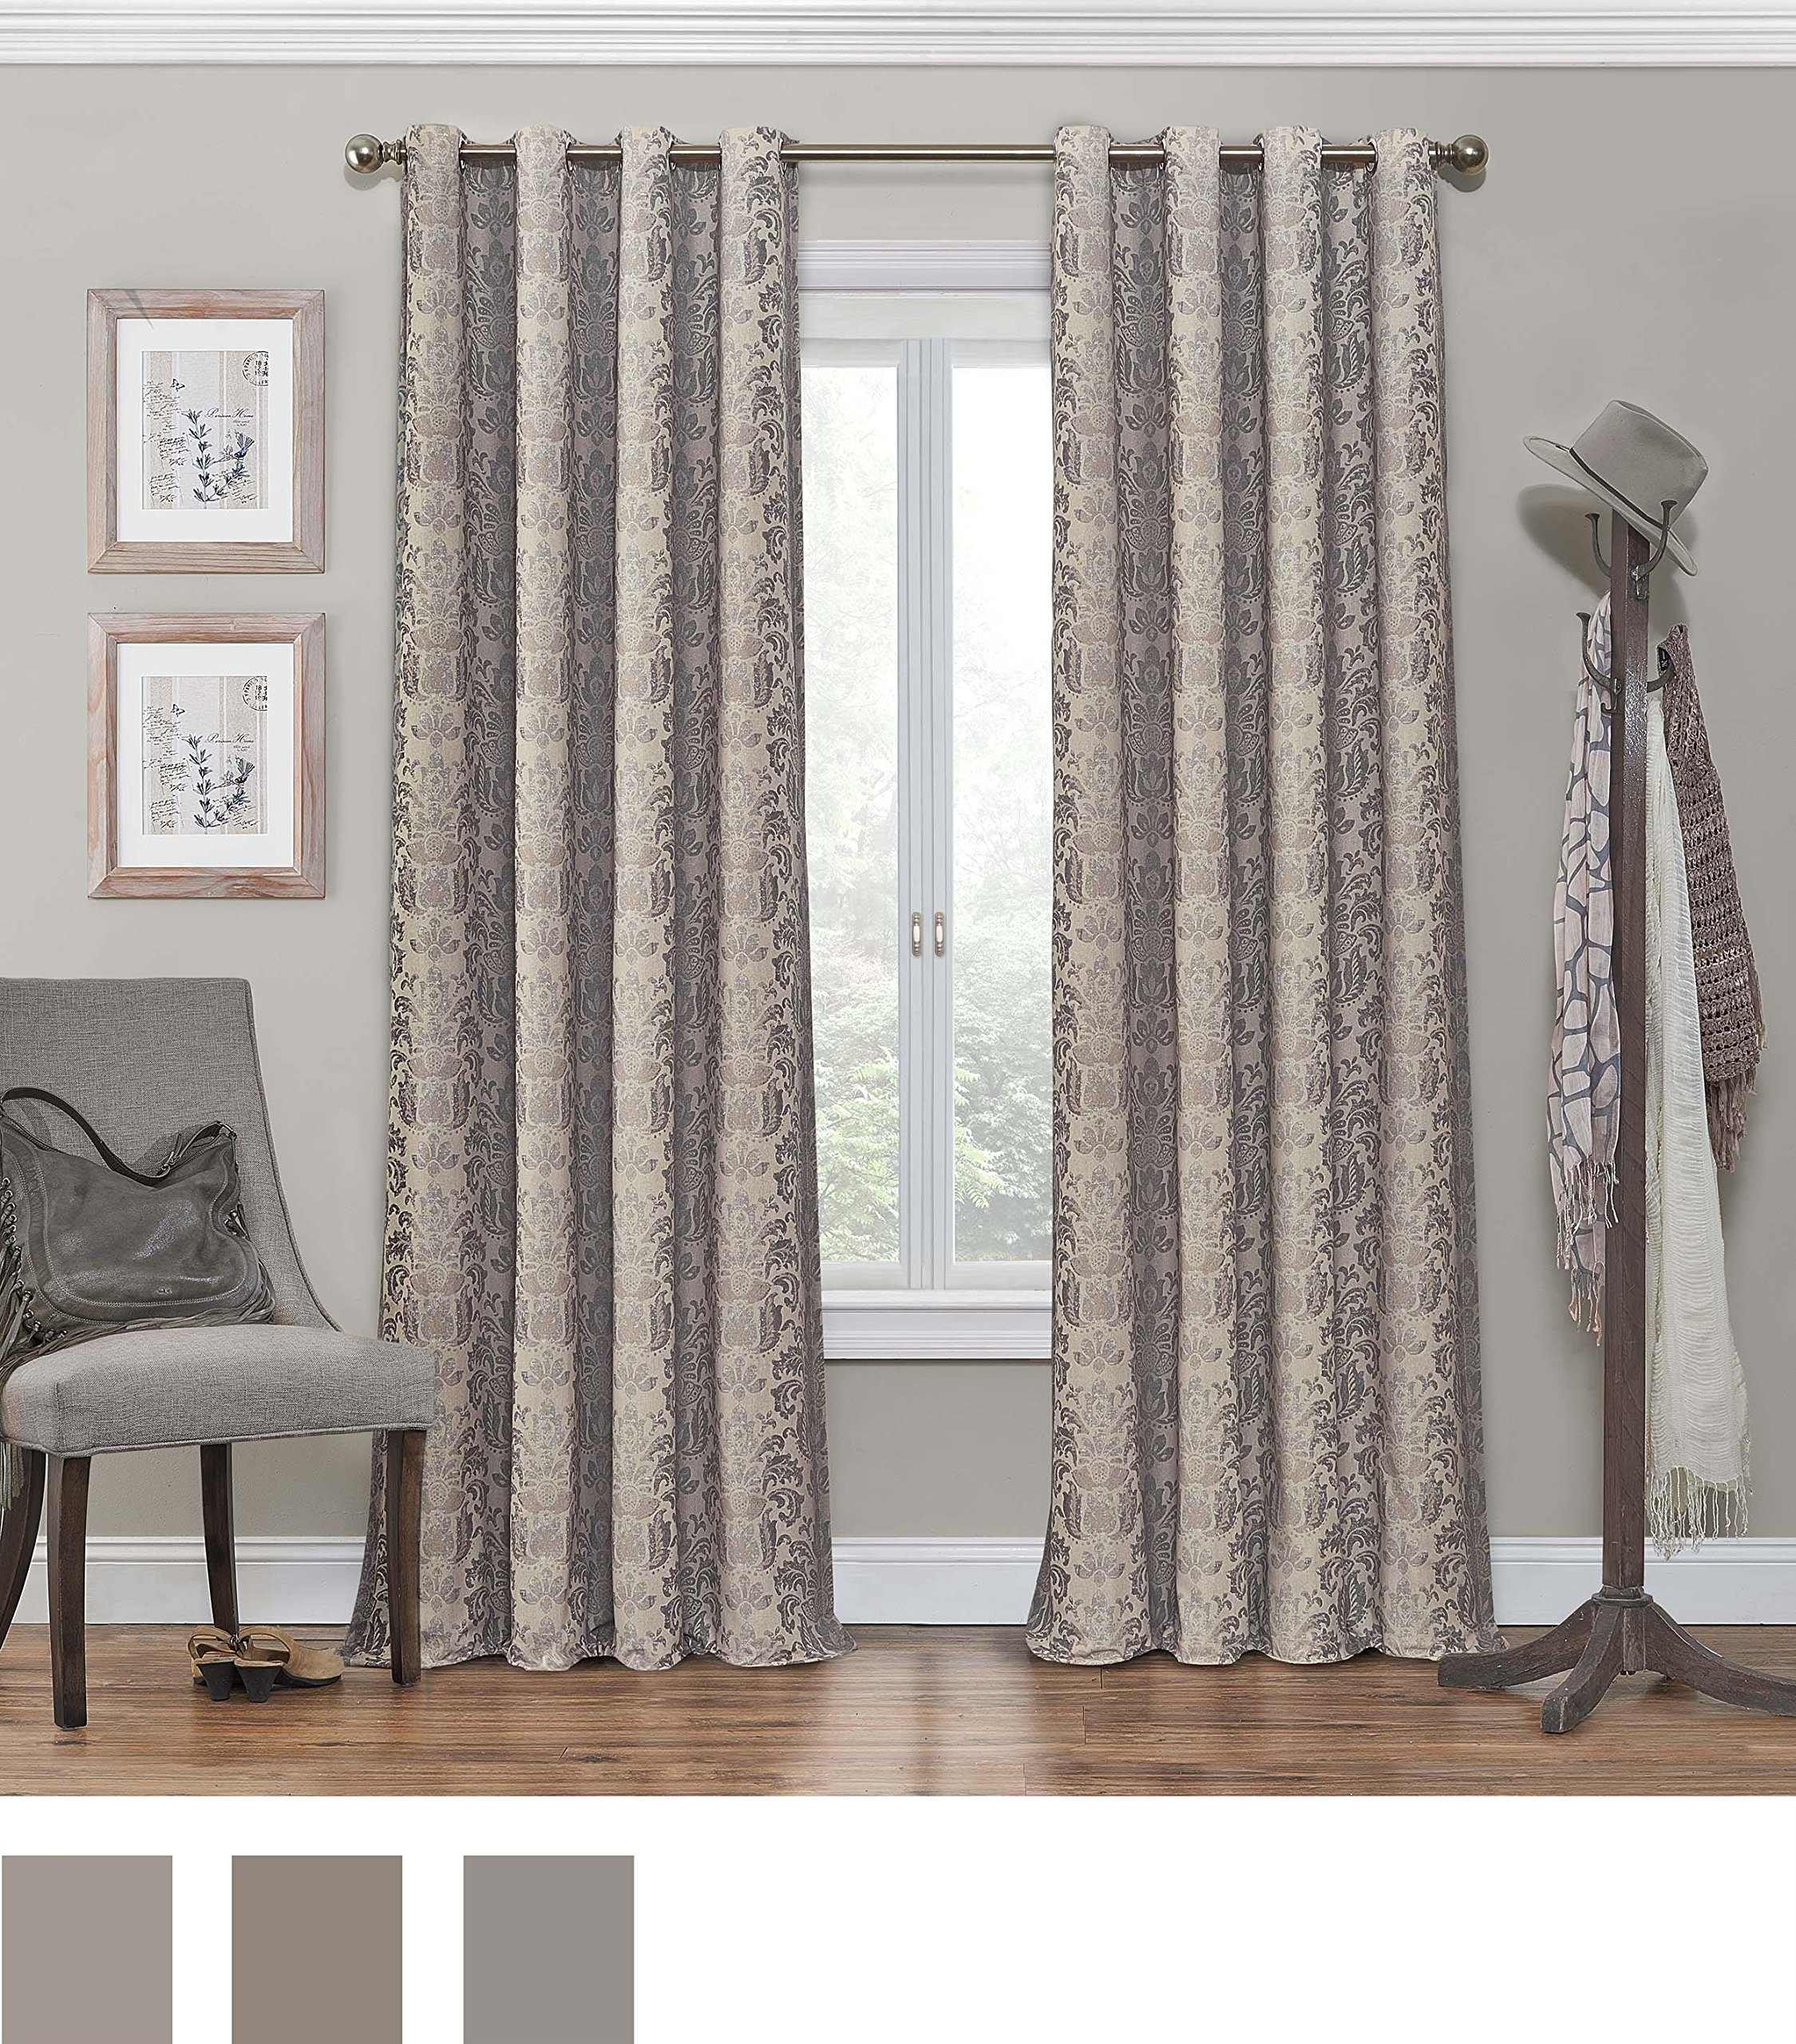 "ECLIPSE Nadya Print Thermal Insulated Single Panel Grommet Top Darkening Curtains for Living Room, 52"" x 84"", Linen - Sold as single panel Blocks 98-99.9% of light compared to ordinary curtains Reduces unwanted noise, and helps to save on home heating and cooling costs - living-room-soft-furnishings, living-room, draperies-curtains-shades - A1G4TeFlzEL -"